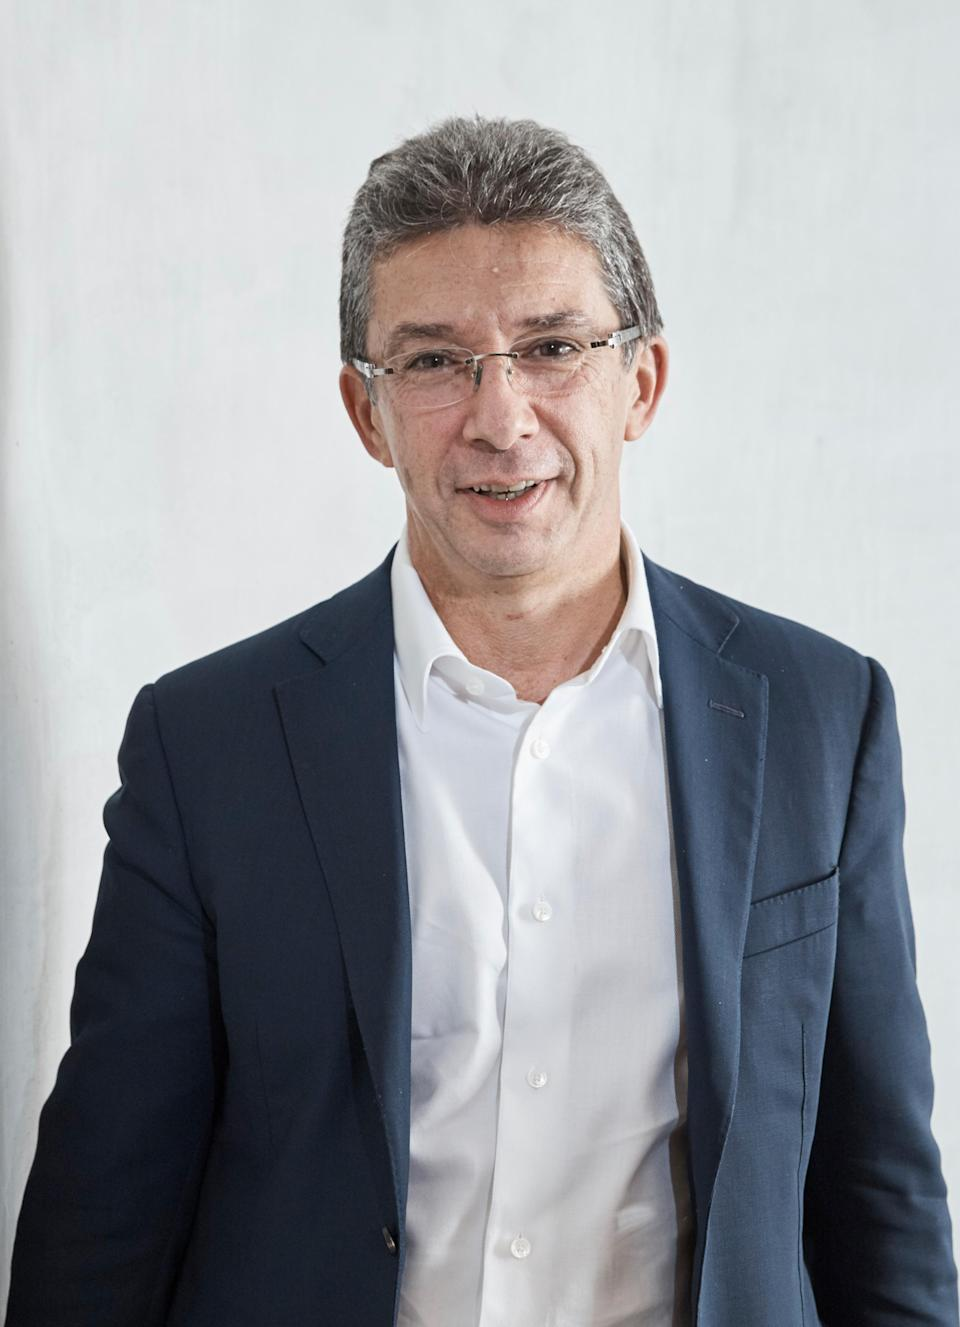 Philip Morris International CEO André Calantzopoulos